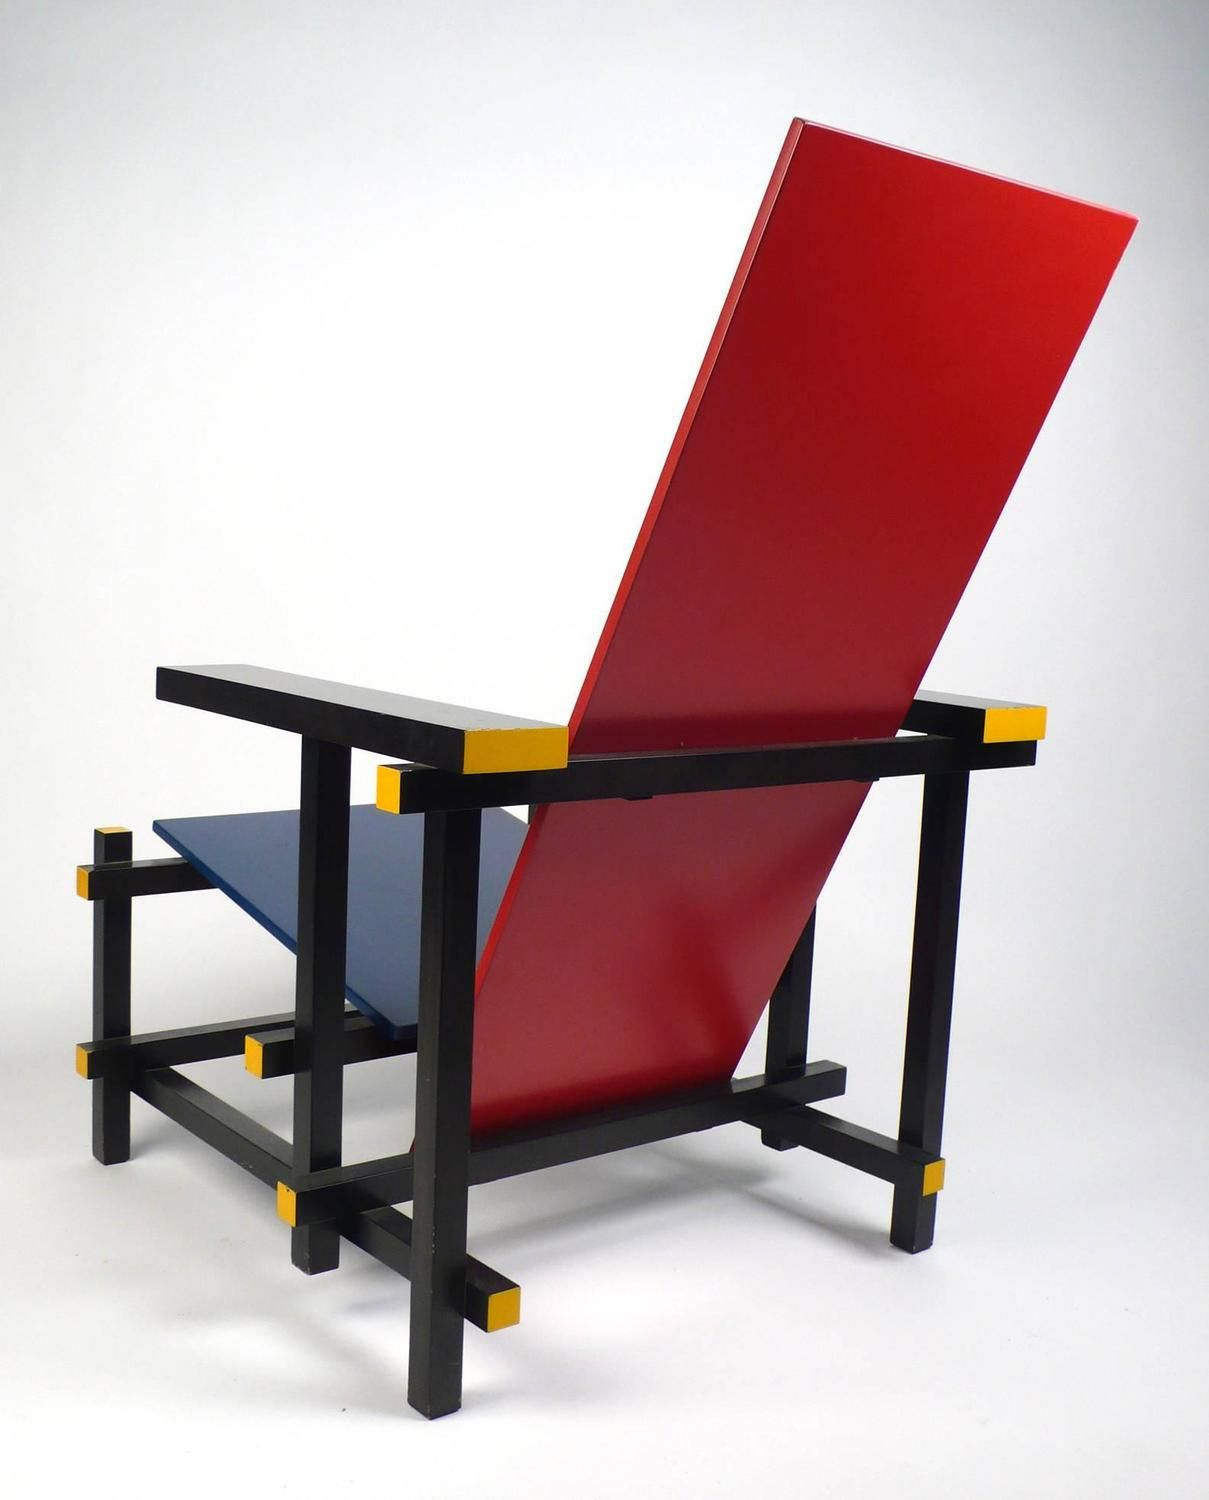 Gerrit rietveld chair for sale - Furniture Vintage Gerrit Rietveld